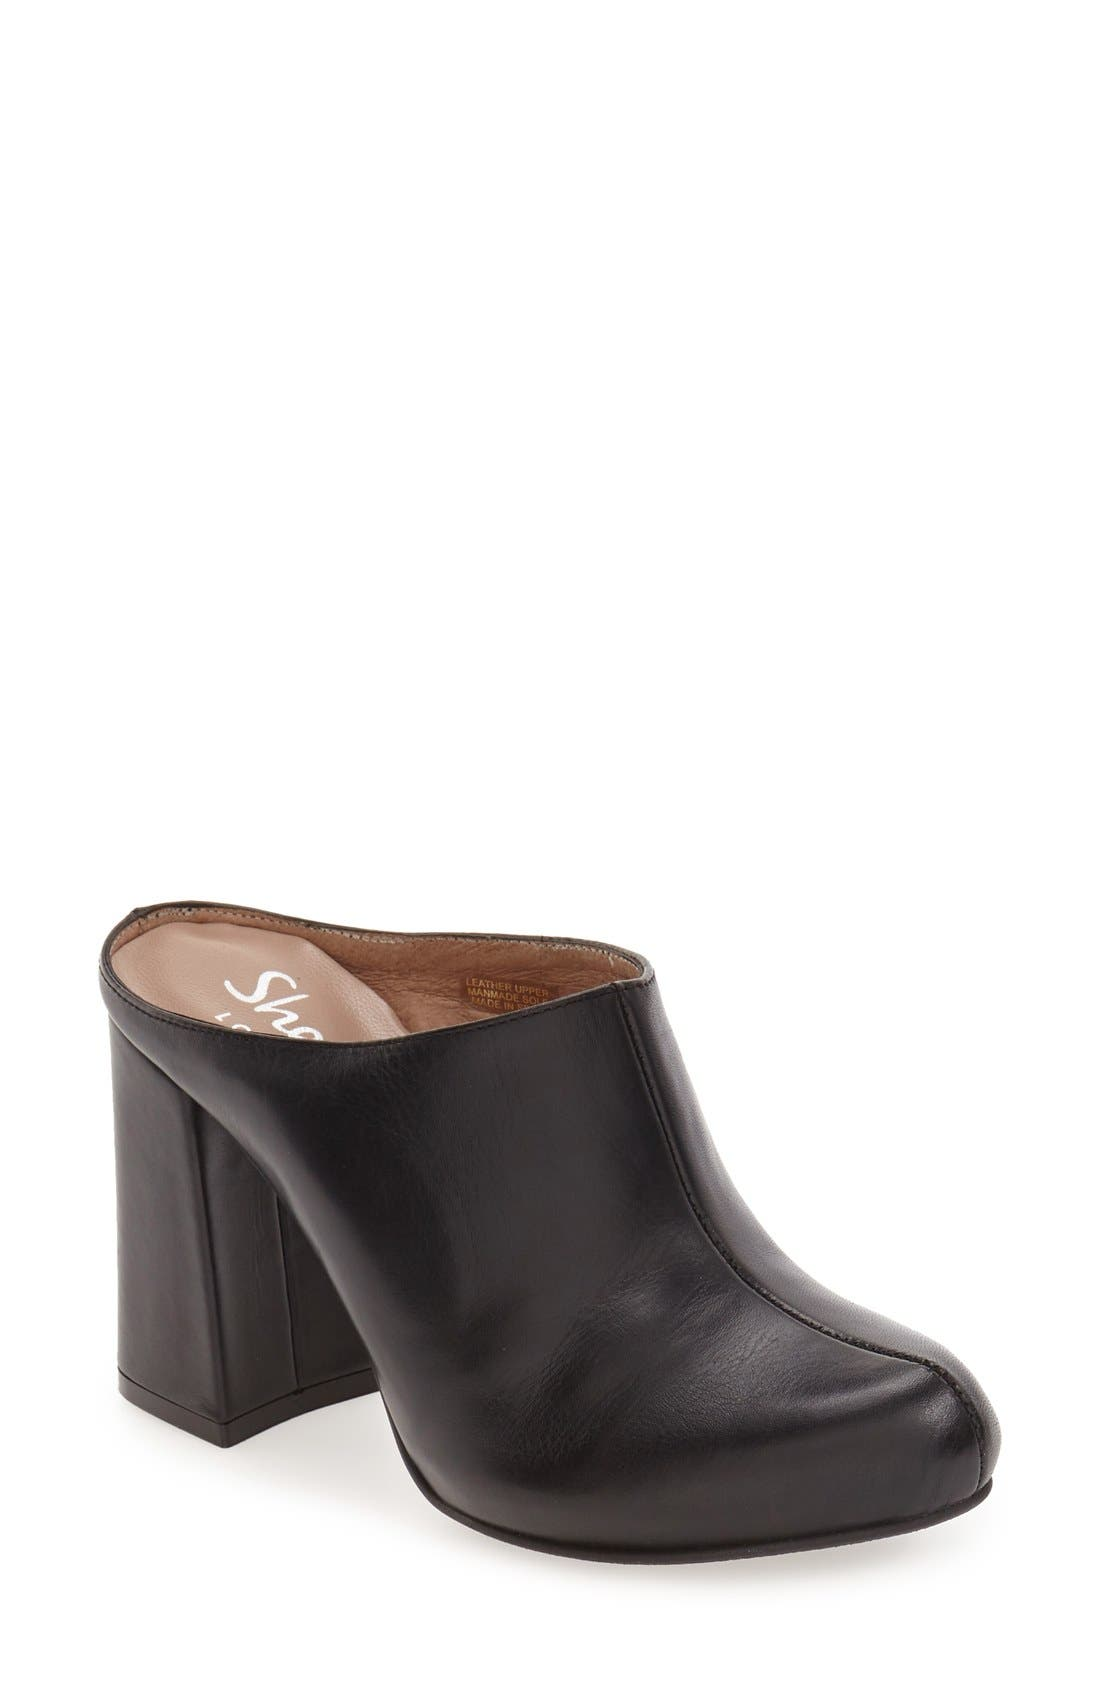 Alternate Image 1 Selected - Shellys London 'Kylie' Mule (Women)